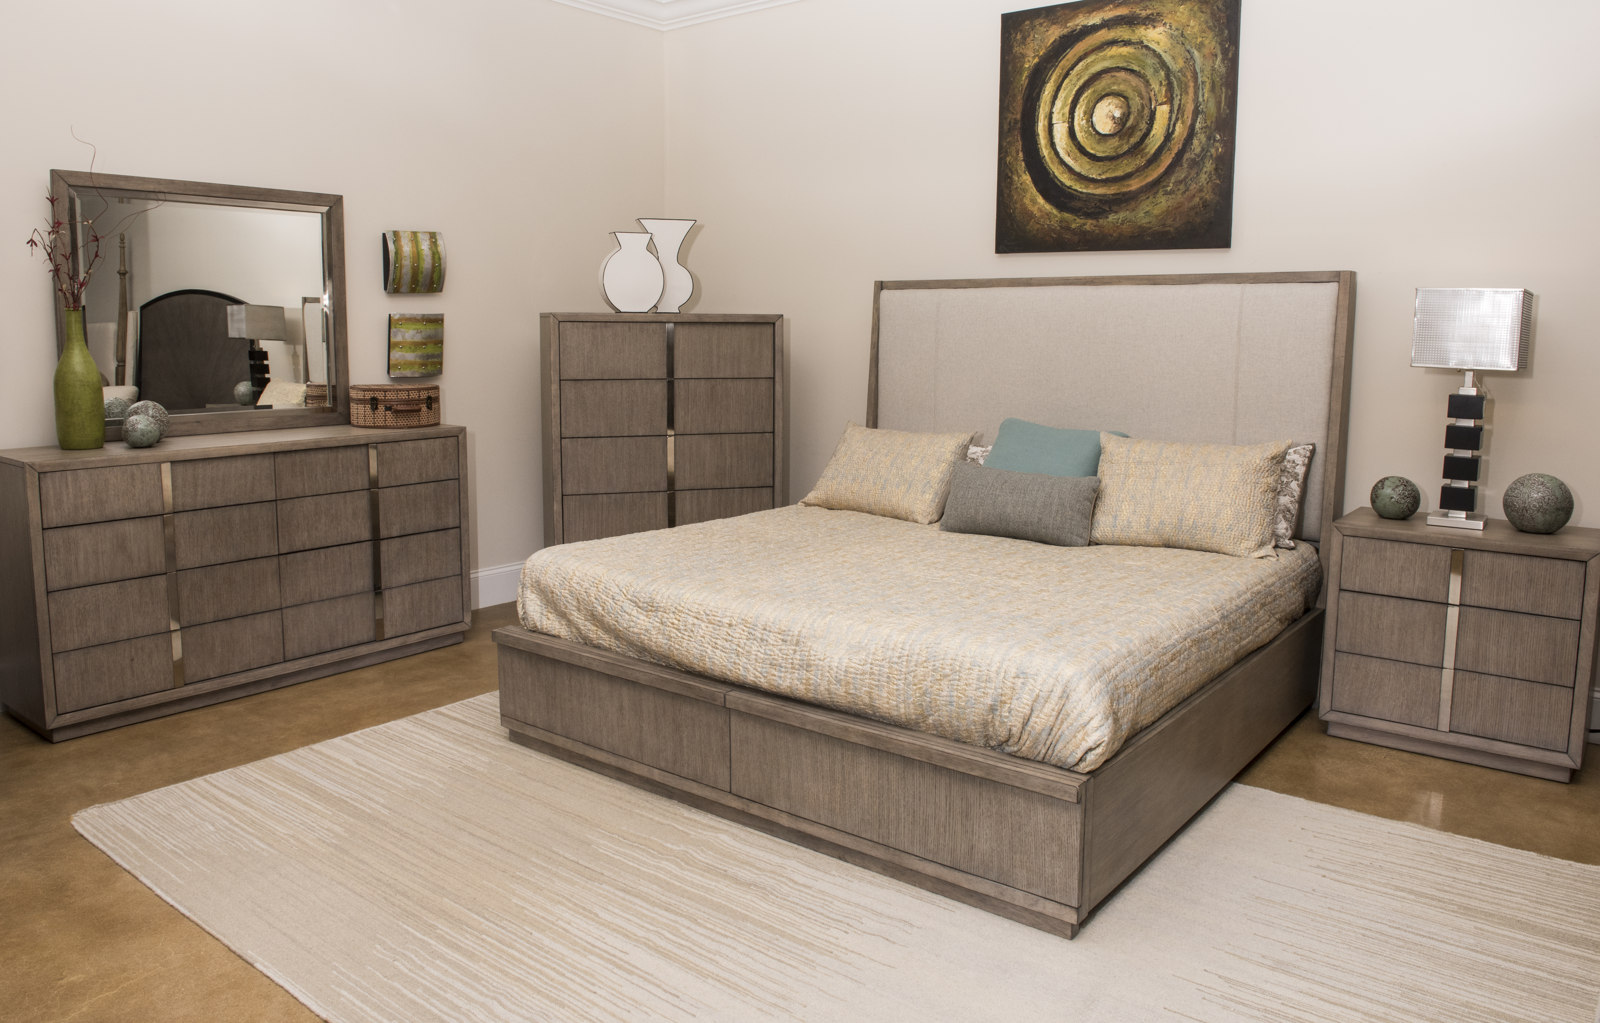 Bed Bases Melbourne Klaussner Melbourne 4 Piece Upholstered Panel Bedroom Set In Soft Gray